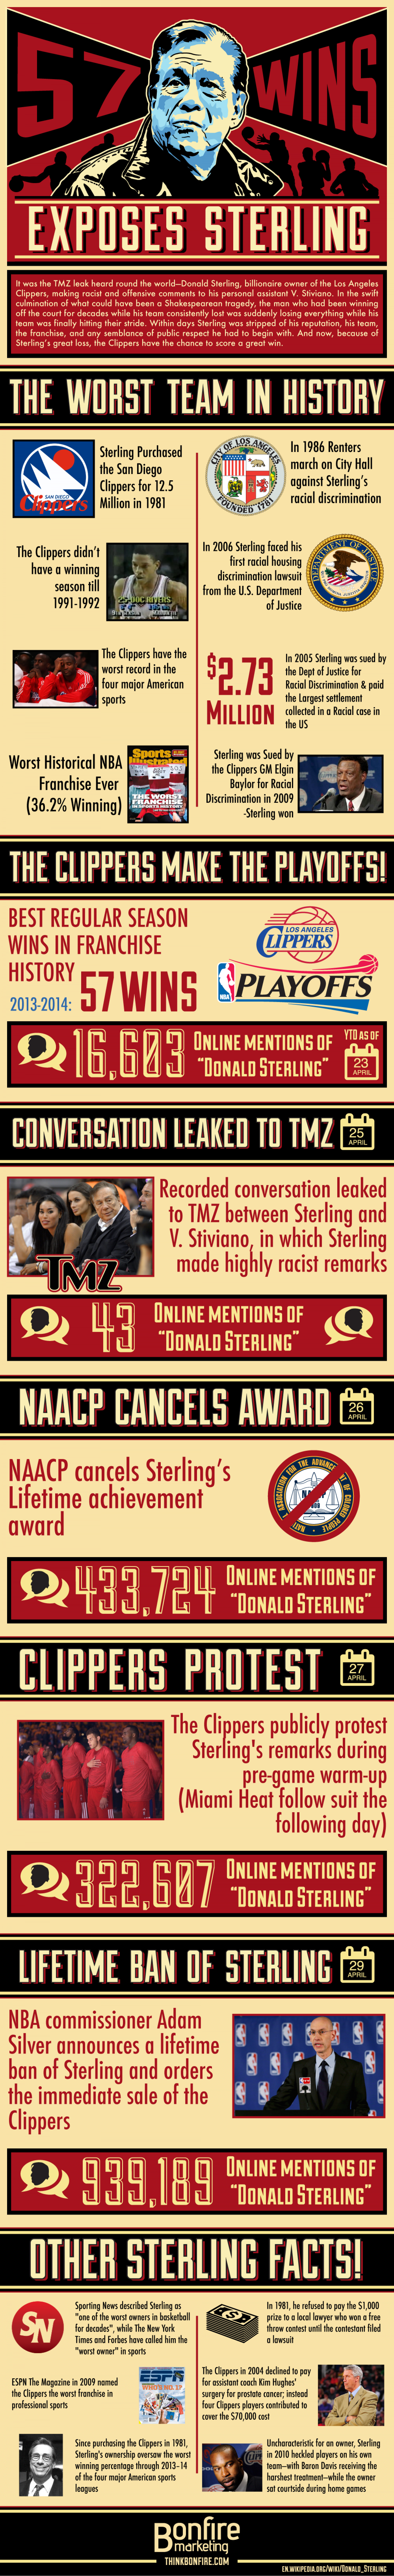 57 Wins Exposes Sterling Infographic